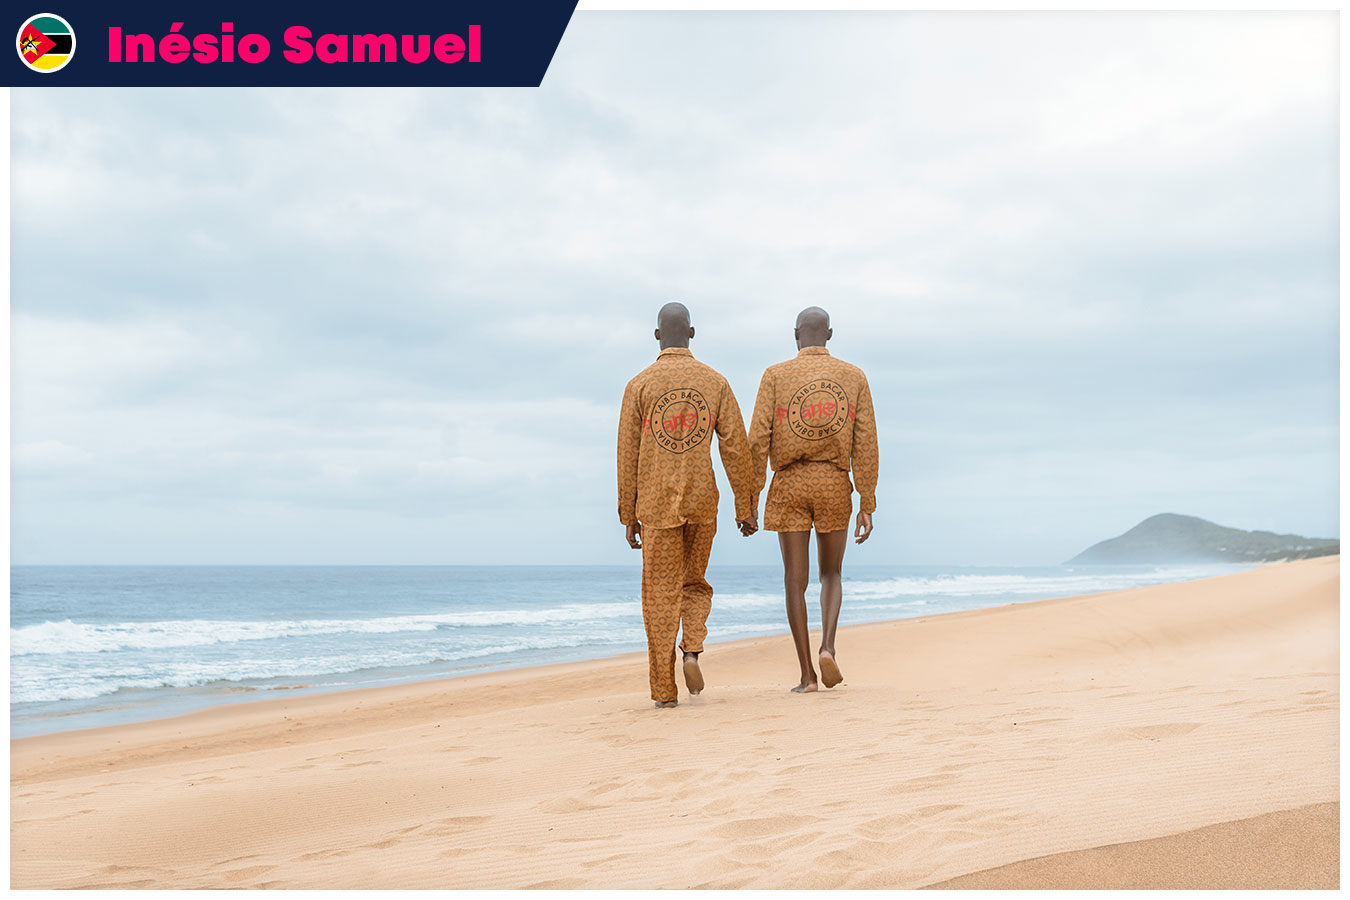 Title: Fearless | Category: SUPPORTING | Winner: Inésio Samuel, Mozambique